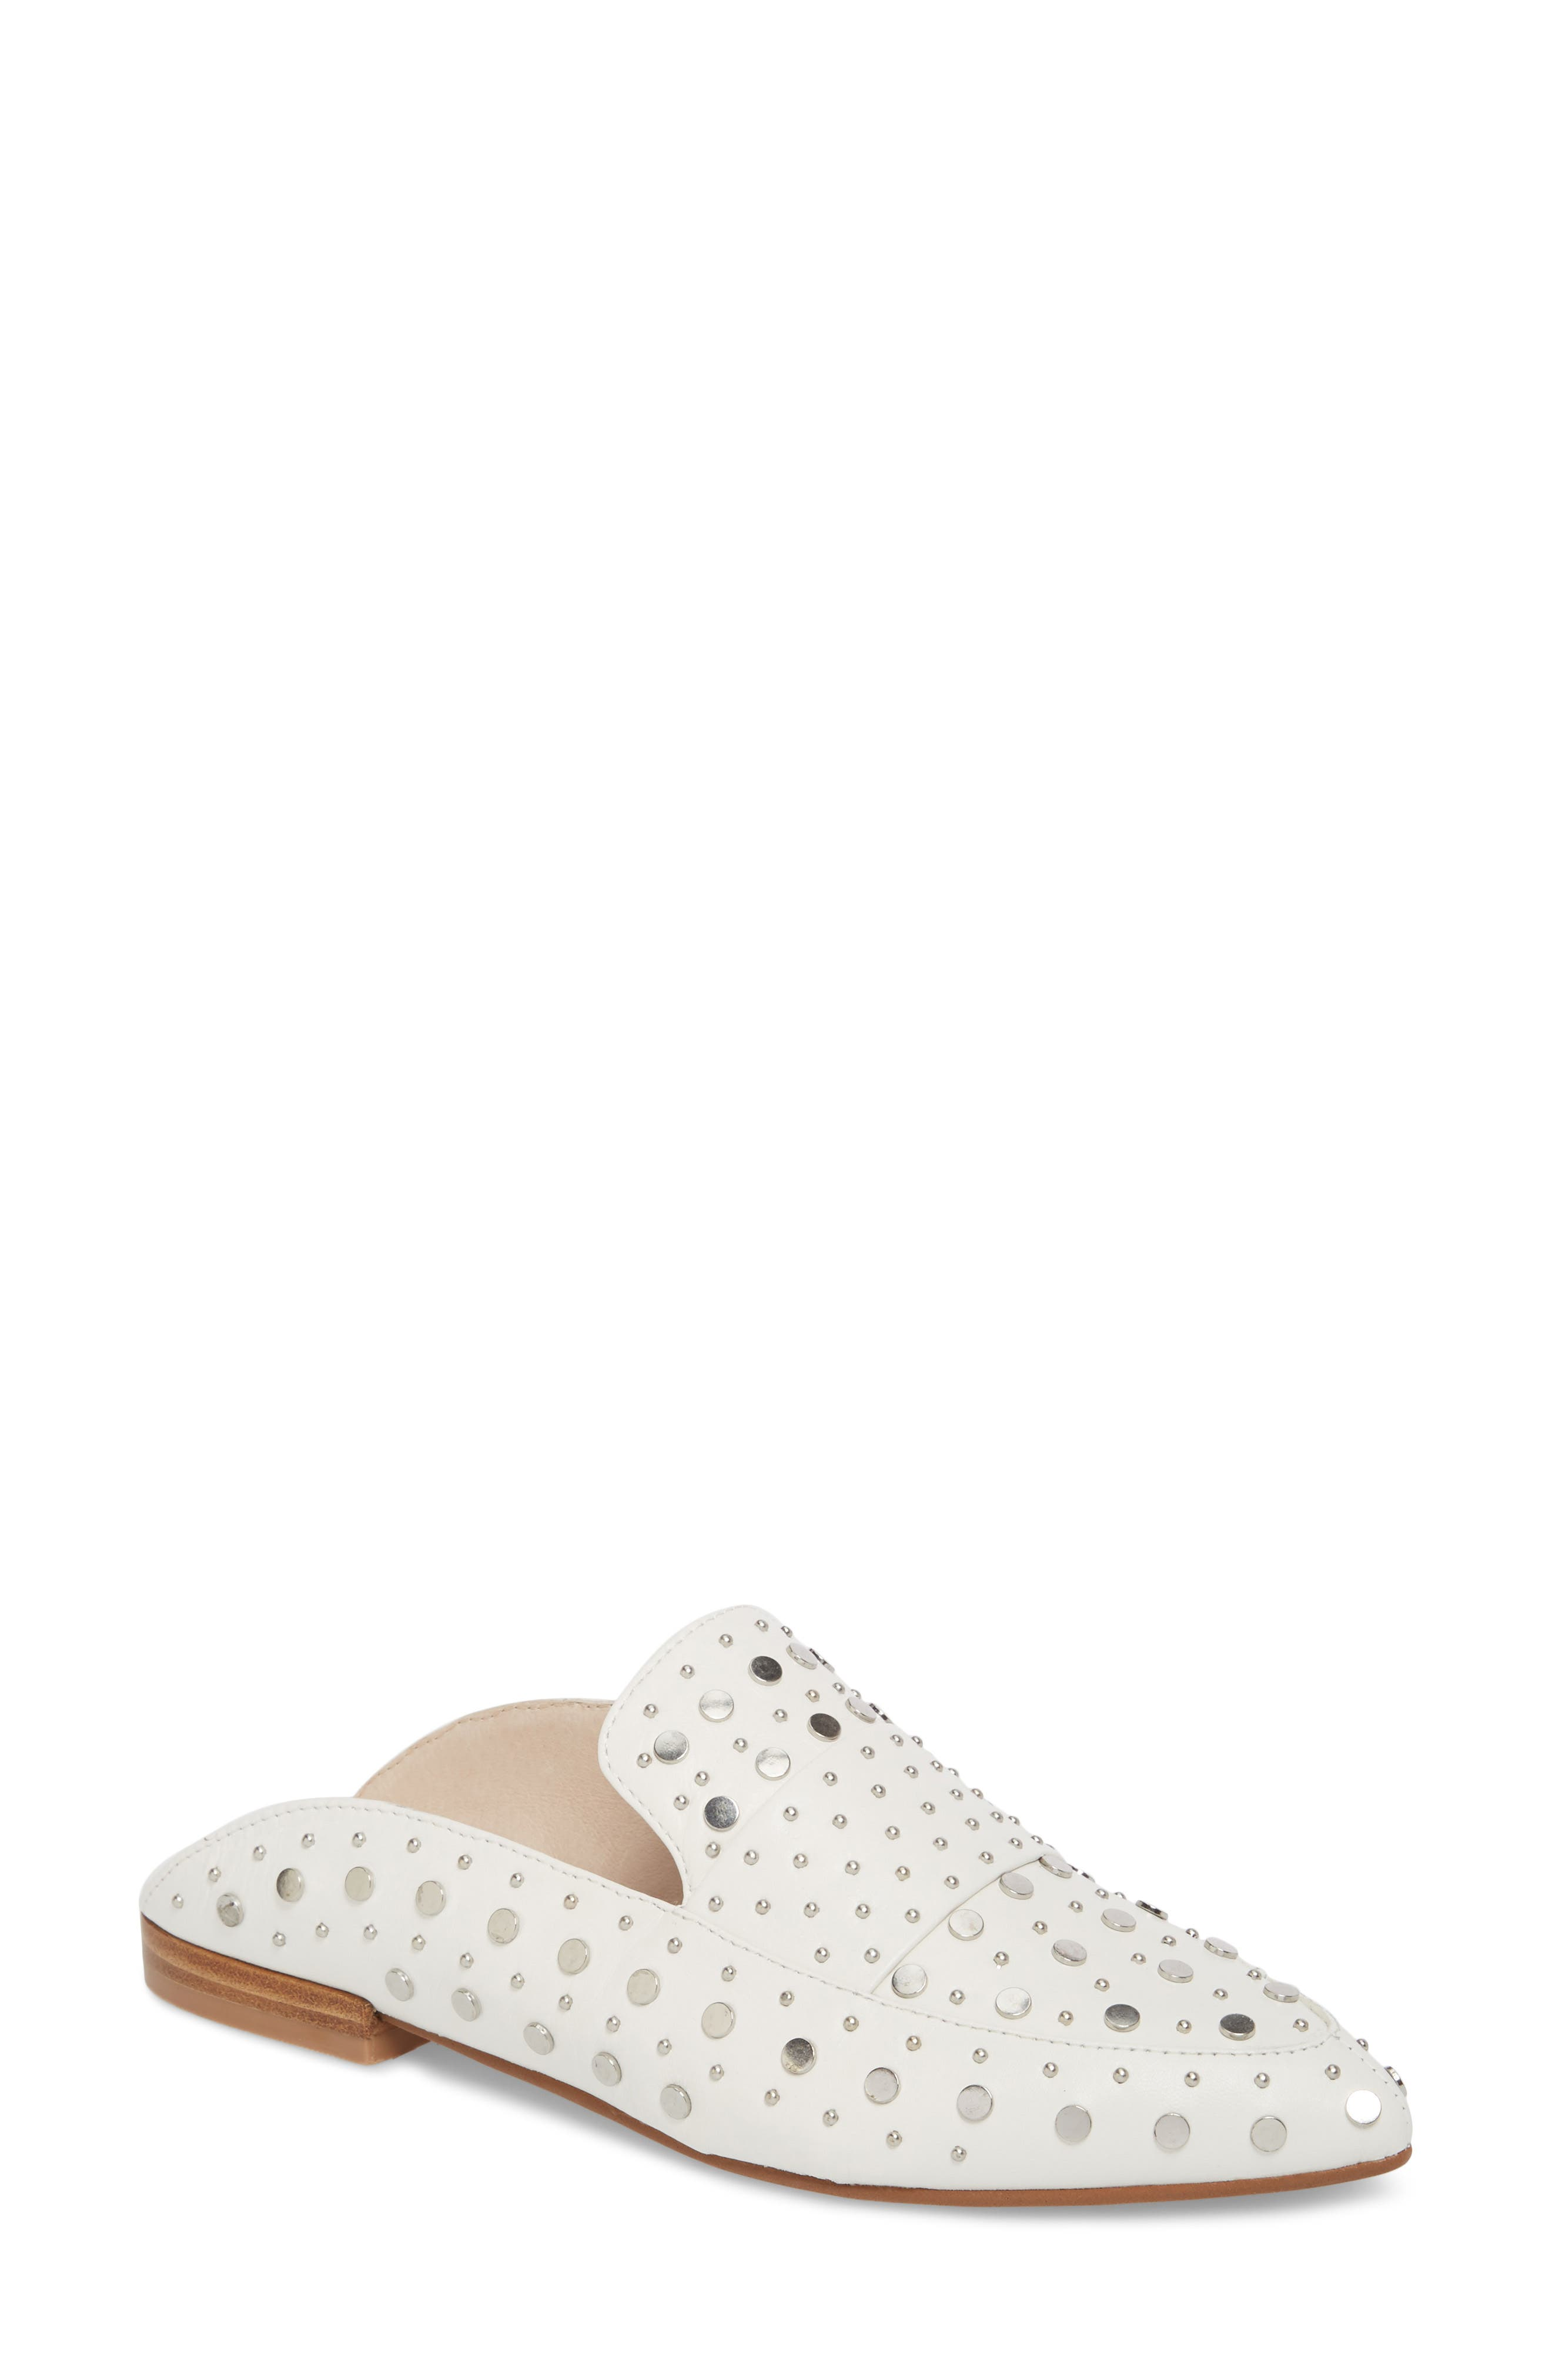 Charlie Studded Loafer Mule,                         Main,                         color, WHITE LEATHER